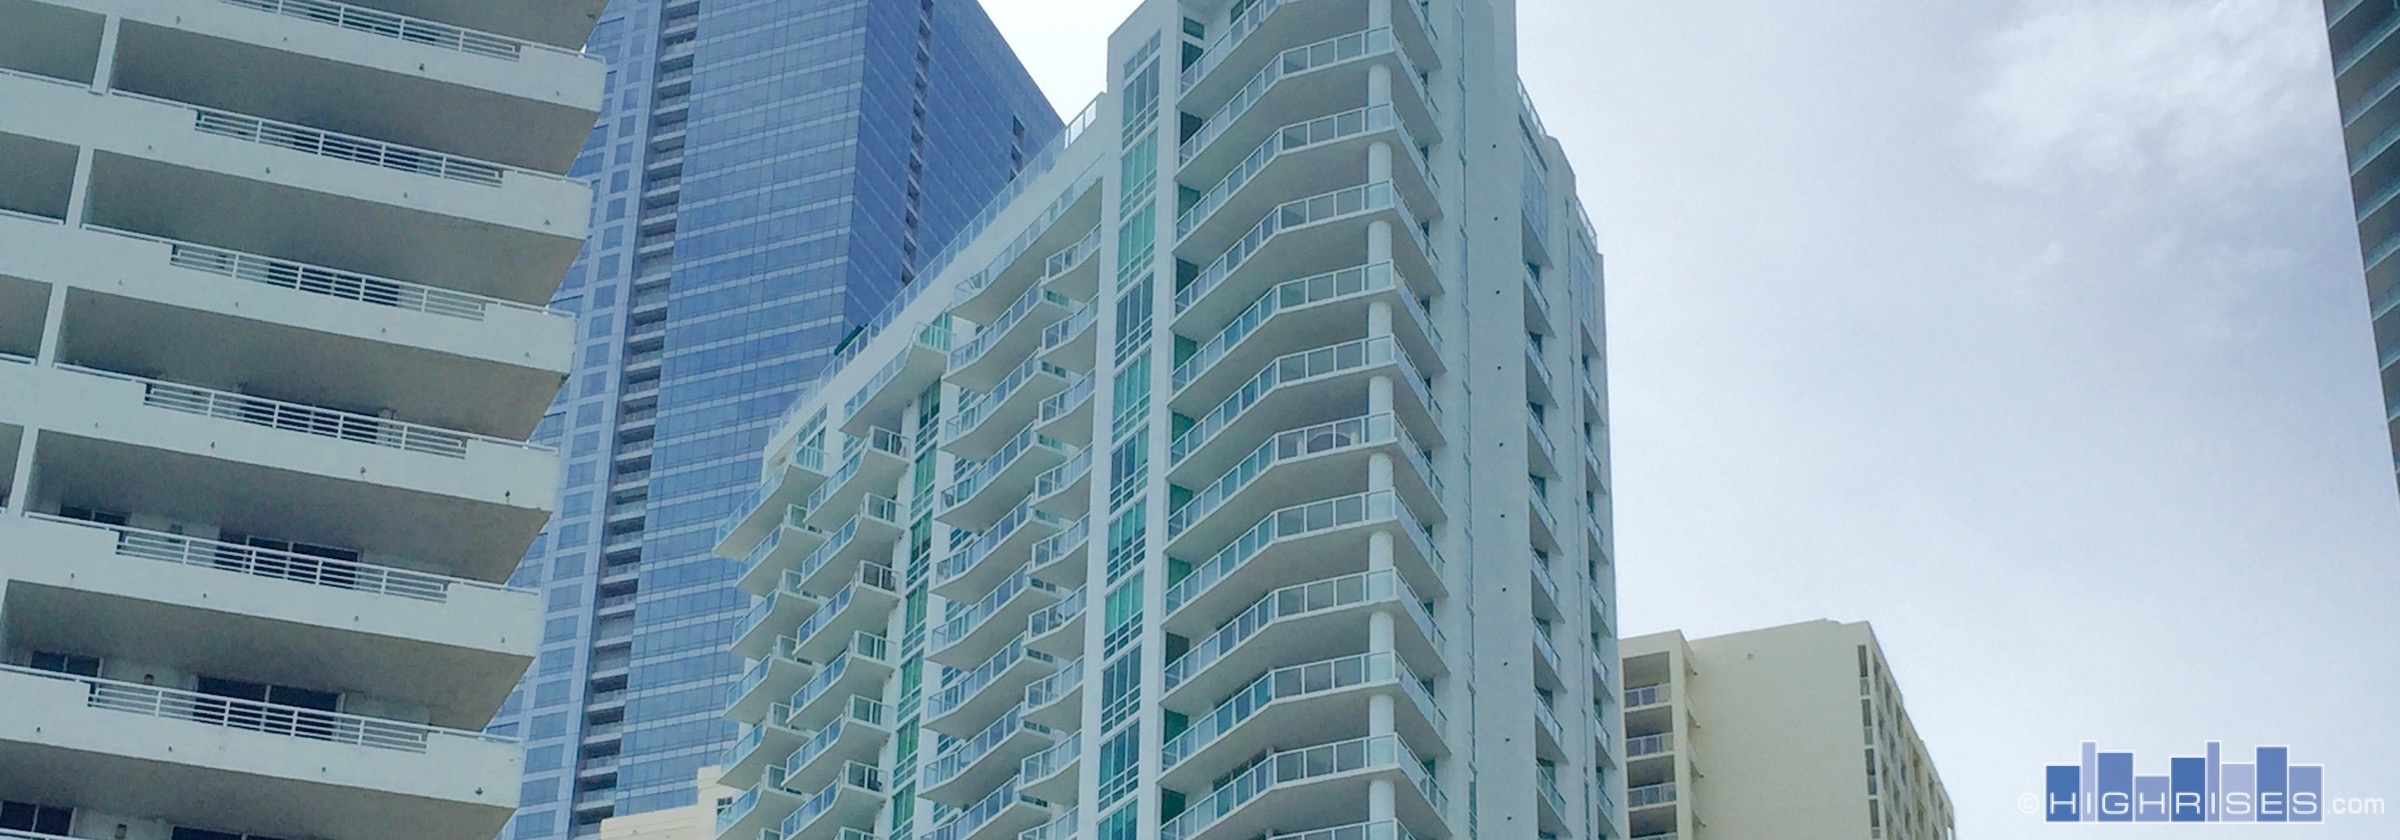 The Emerald at Brickell